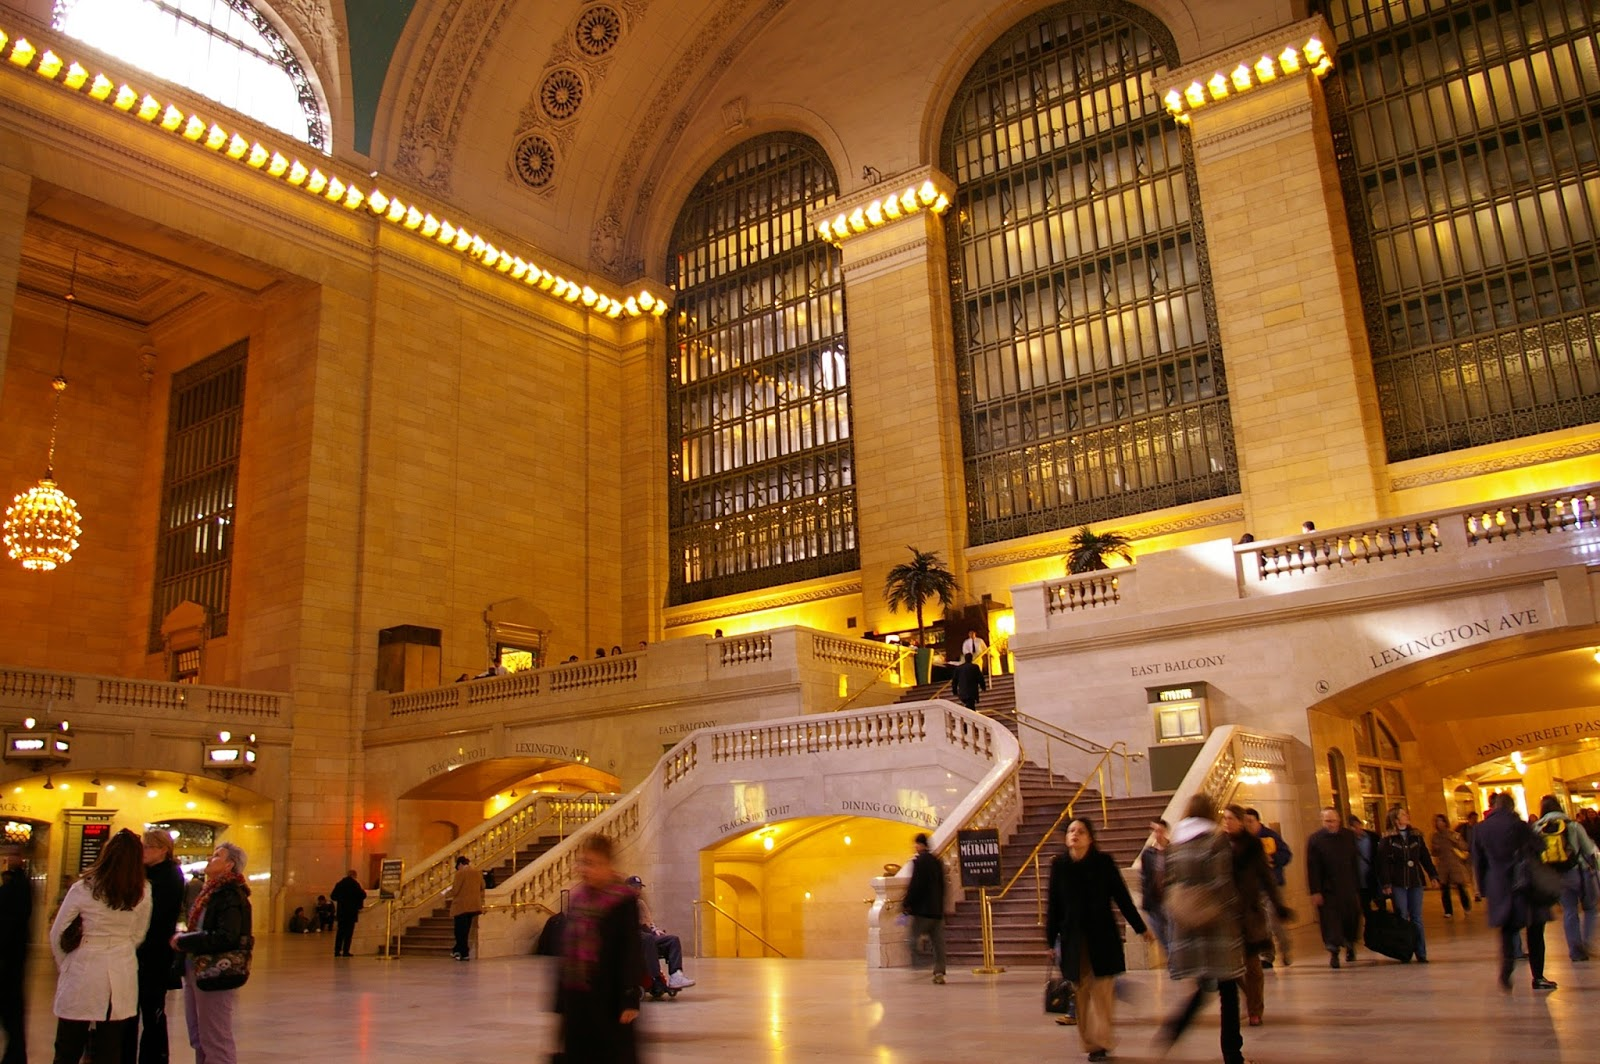 Nowy Jork Grand Central Station